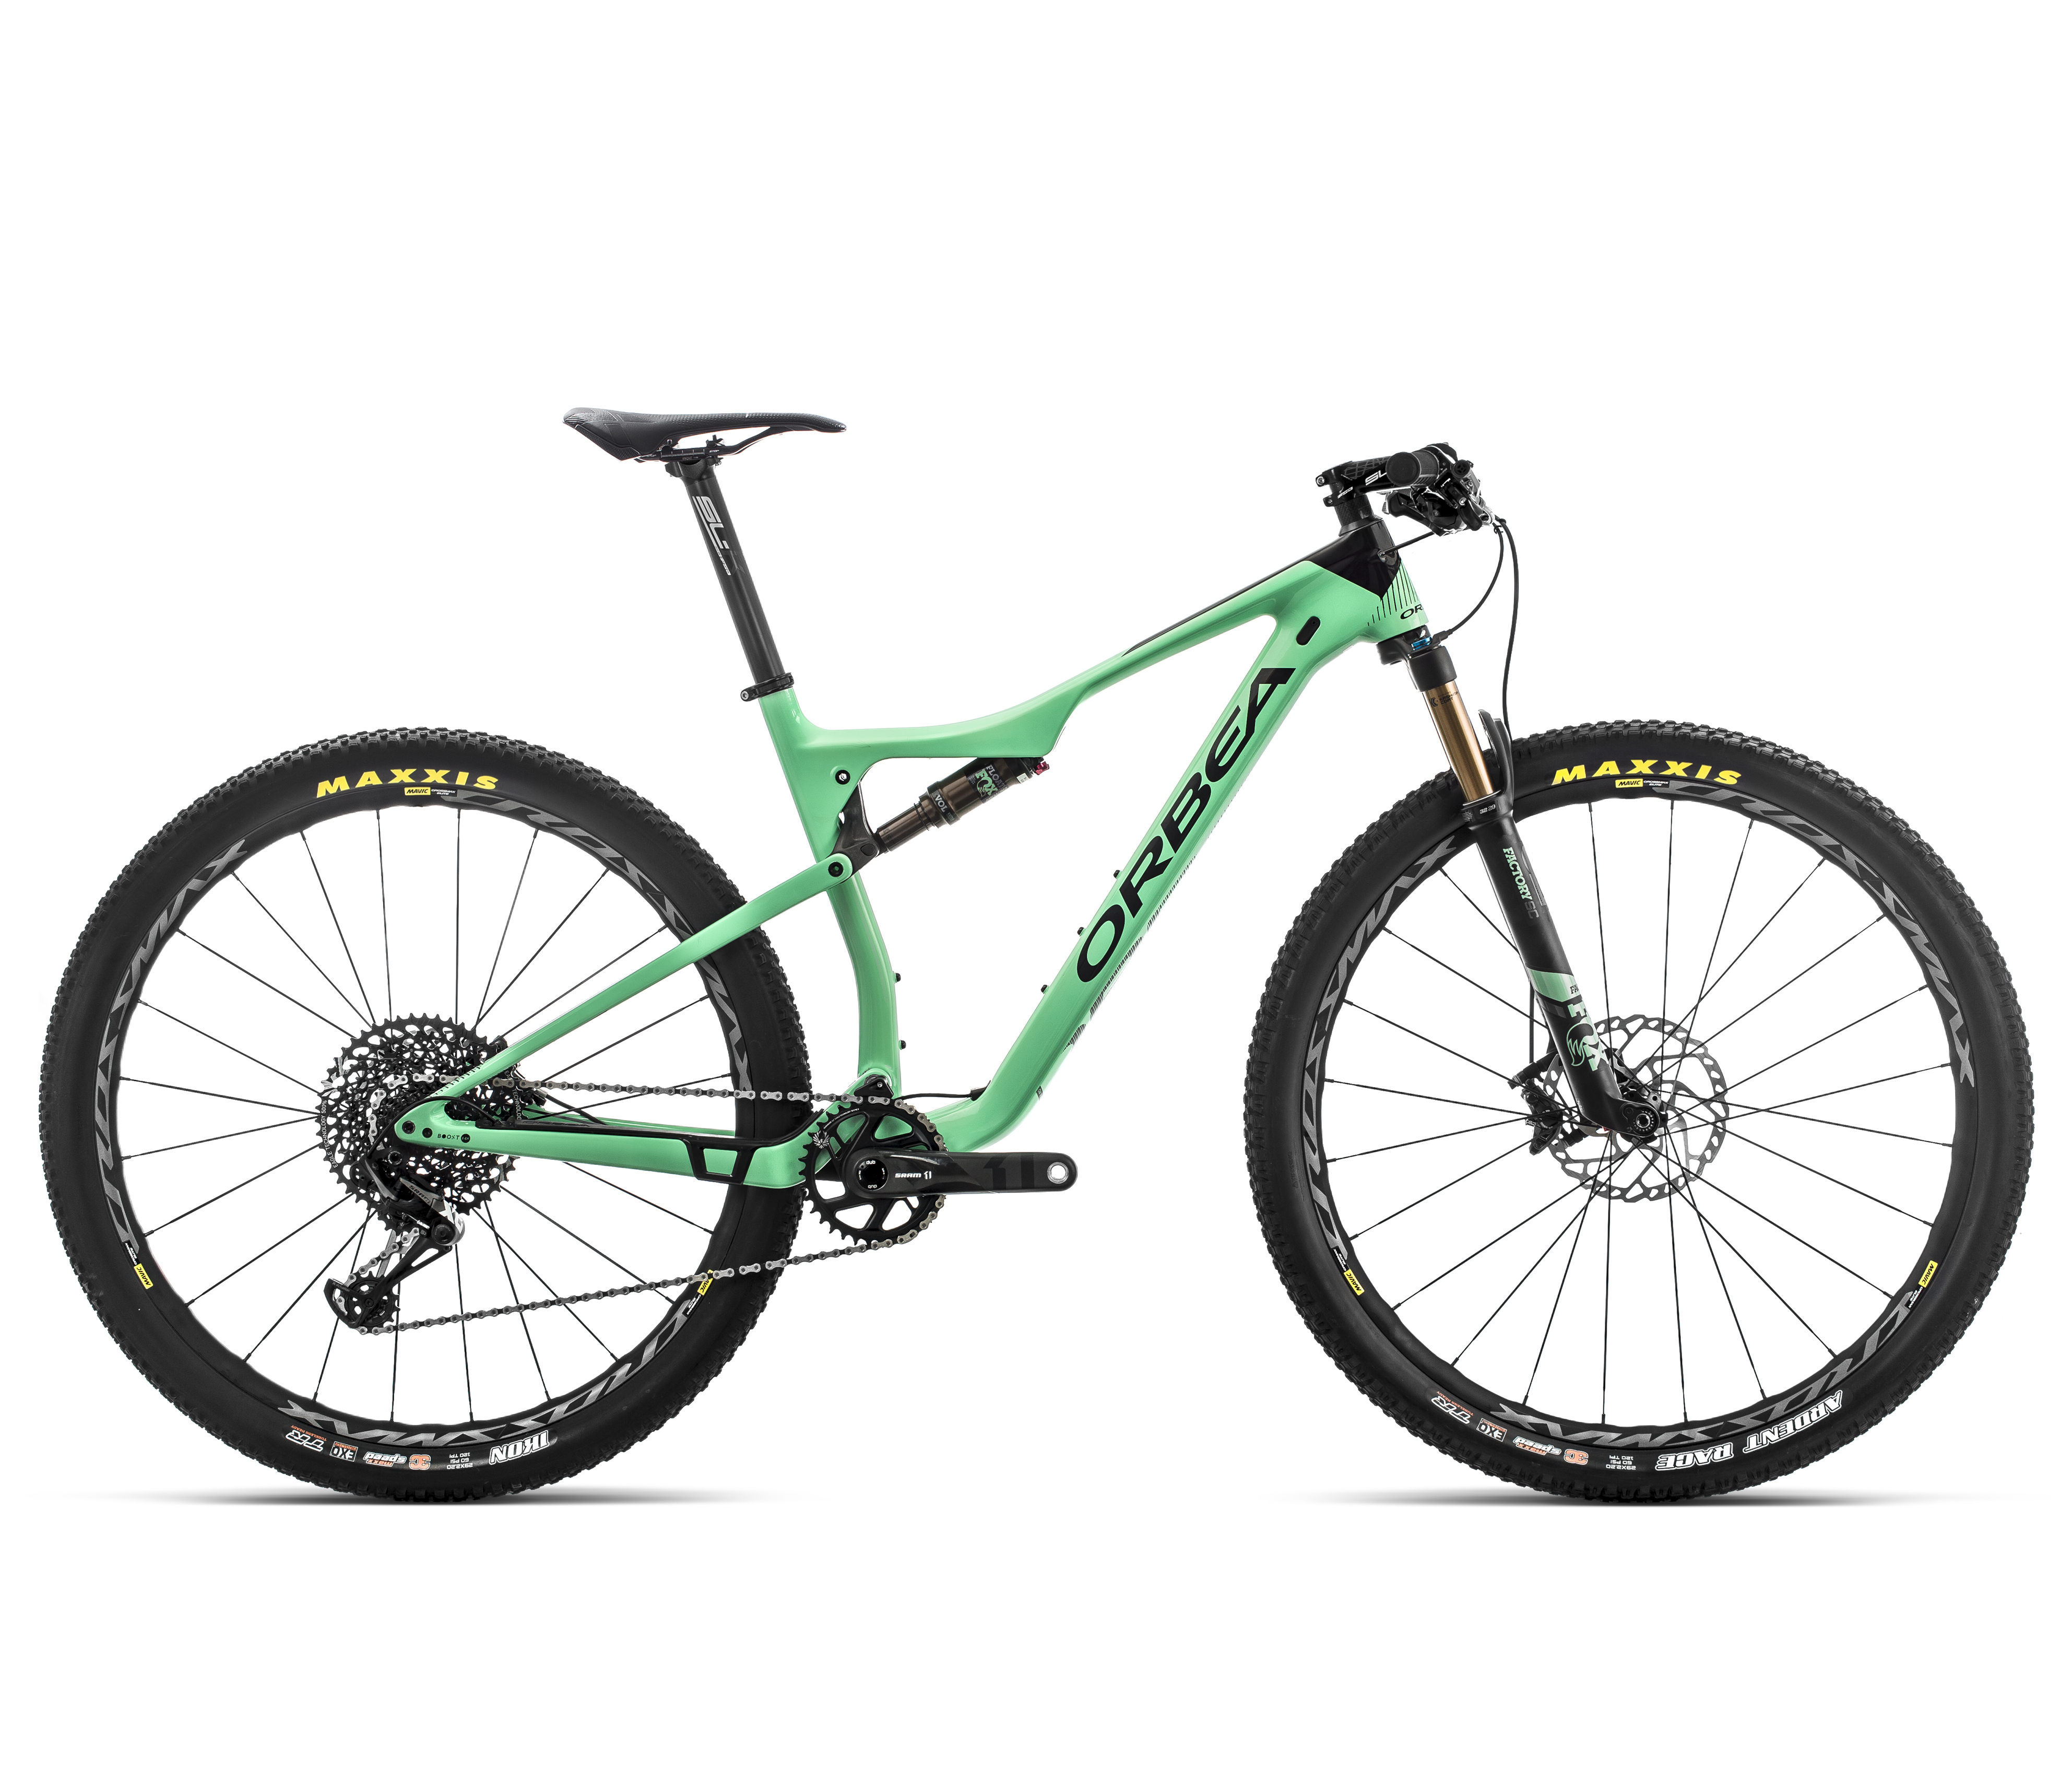 The Oiz M10 retails for $5000 and is a great option for xc and marathon racers.